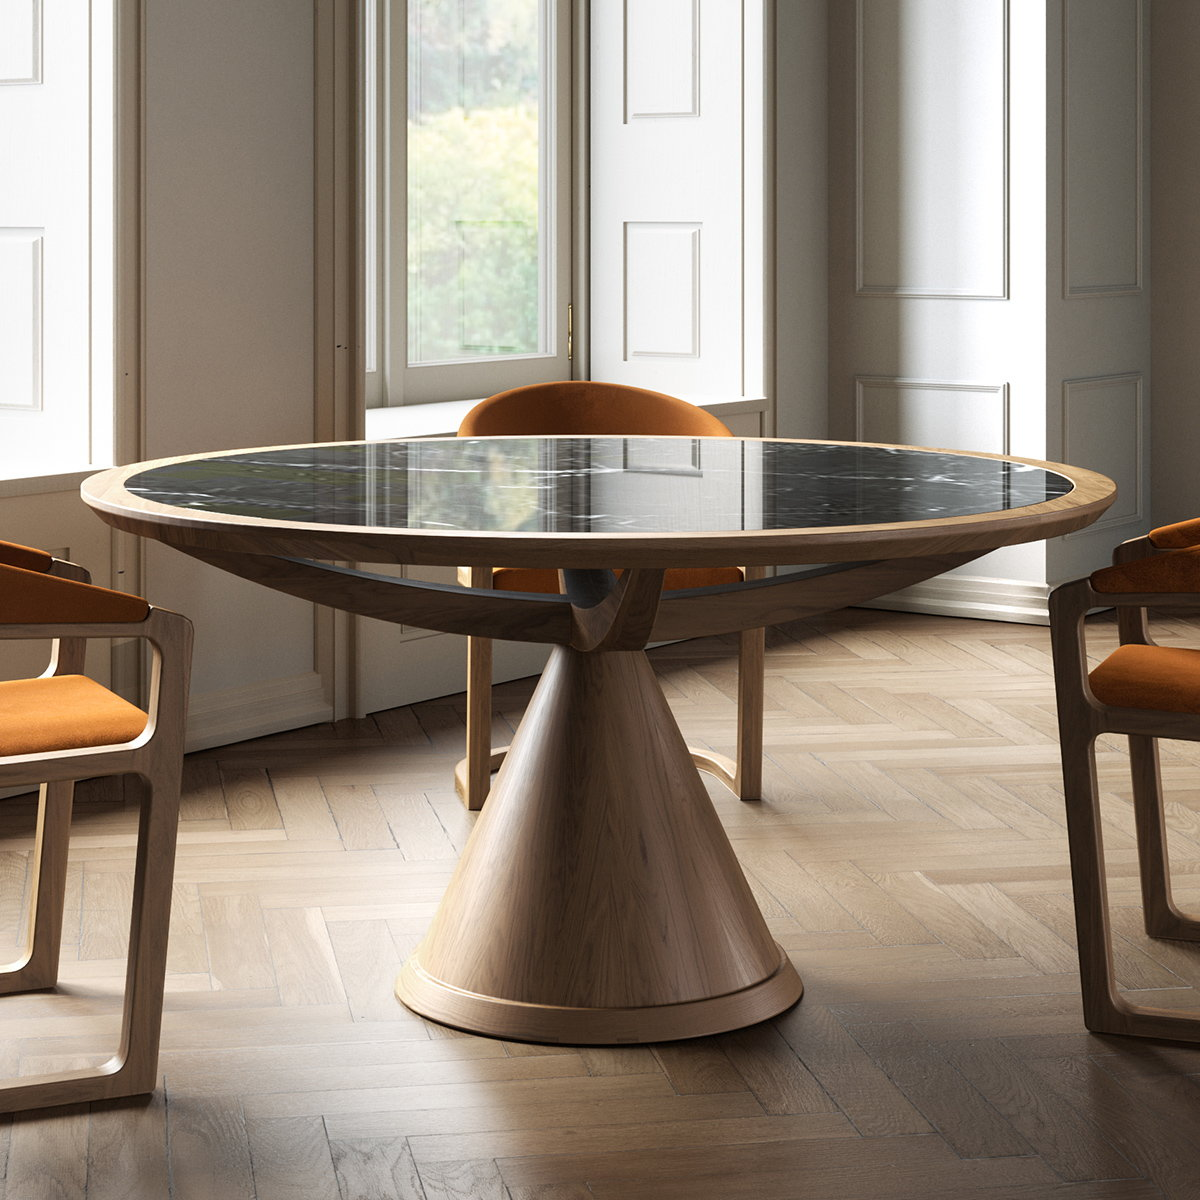 Wewood Debuts Vasco Table by Variaforma